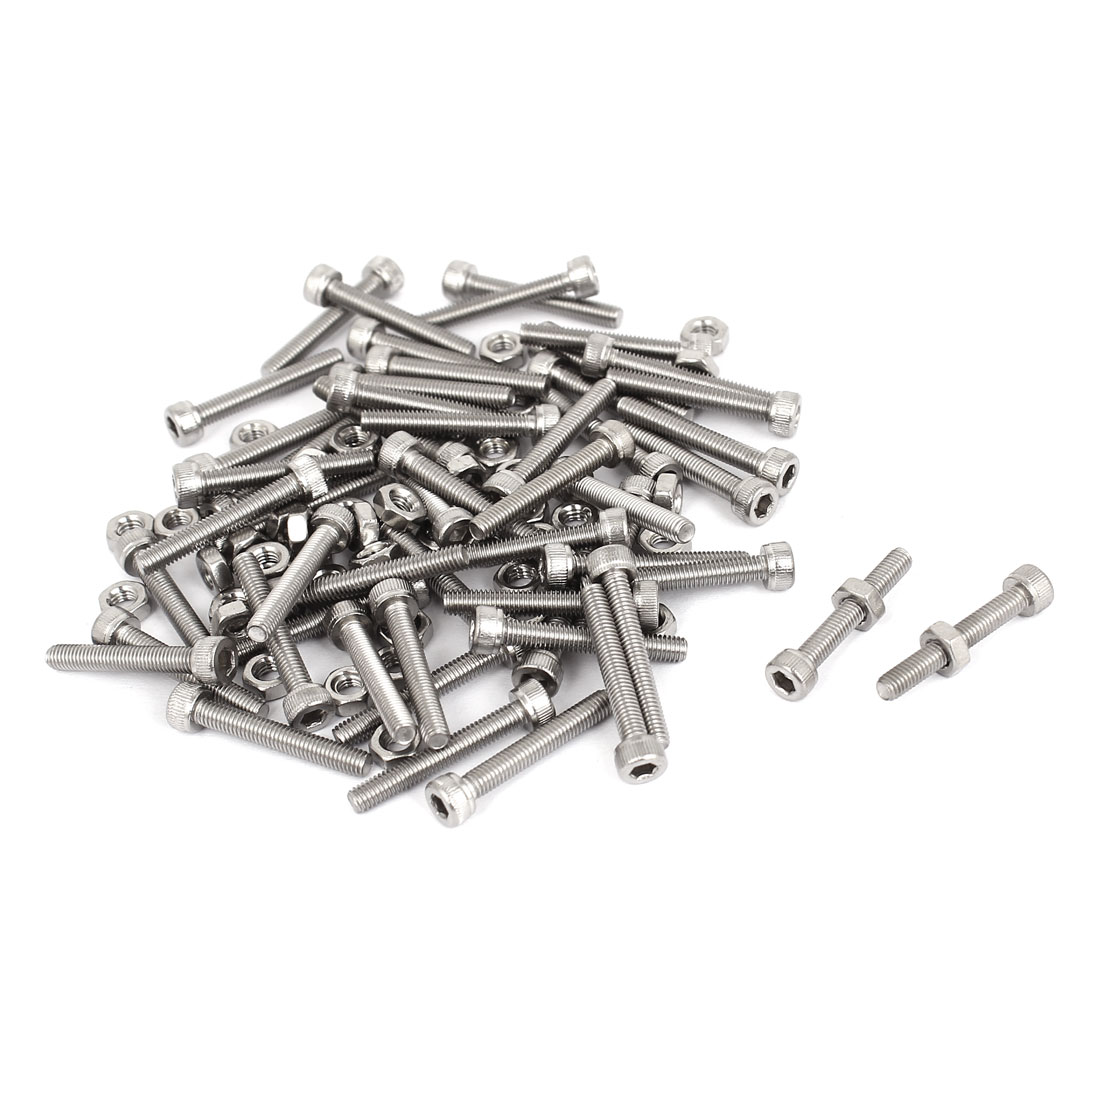 M3x20mm Stainless Steel Hex Socket Head Knurled Cap Screws Bolts Nut Set 50Pcs